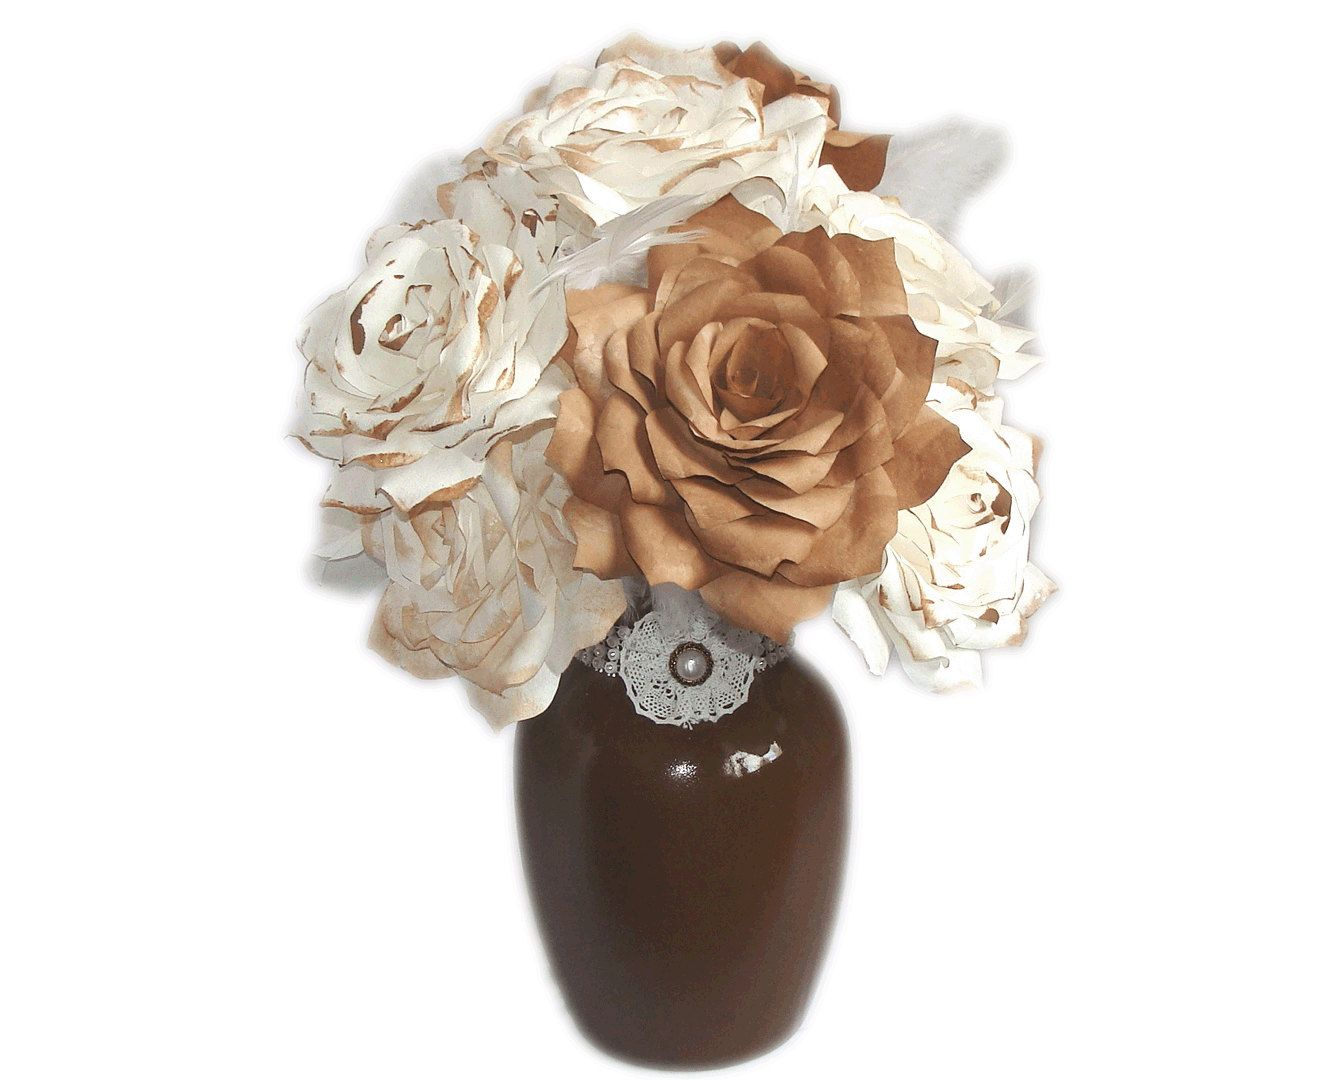 Country Chic Floral Arrangement Centerpiece Using Handmade Brown And